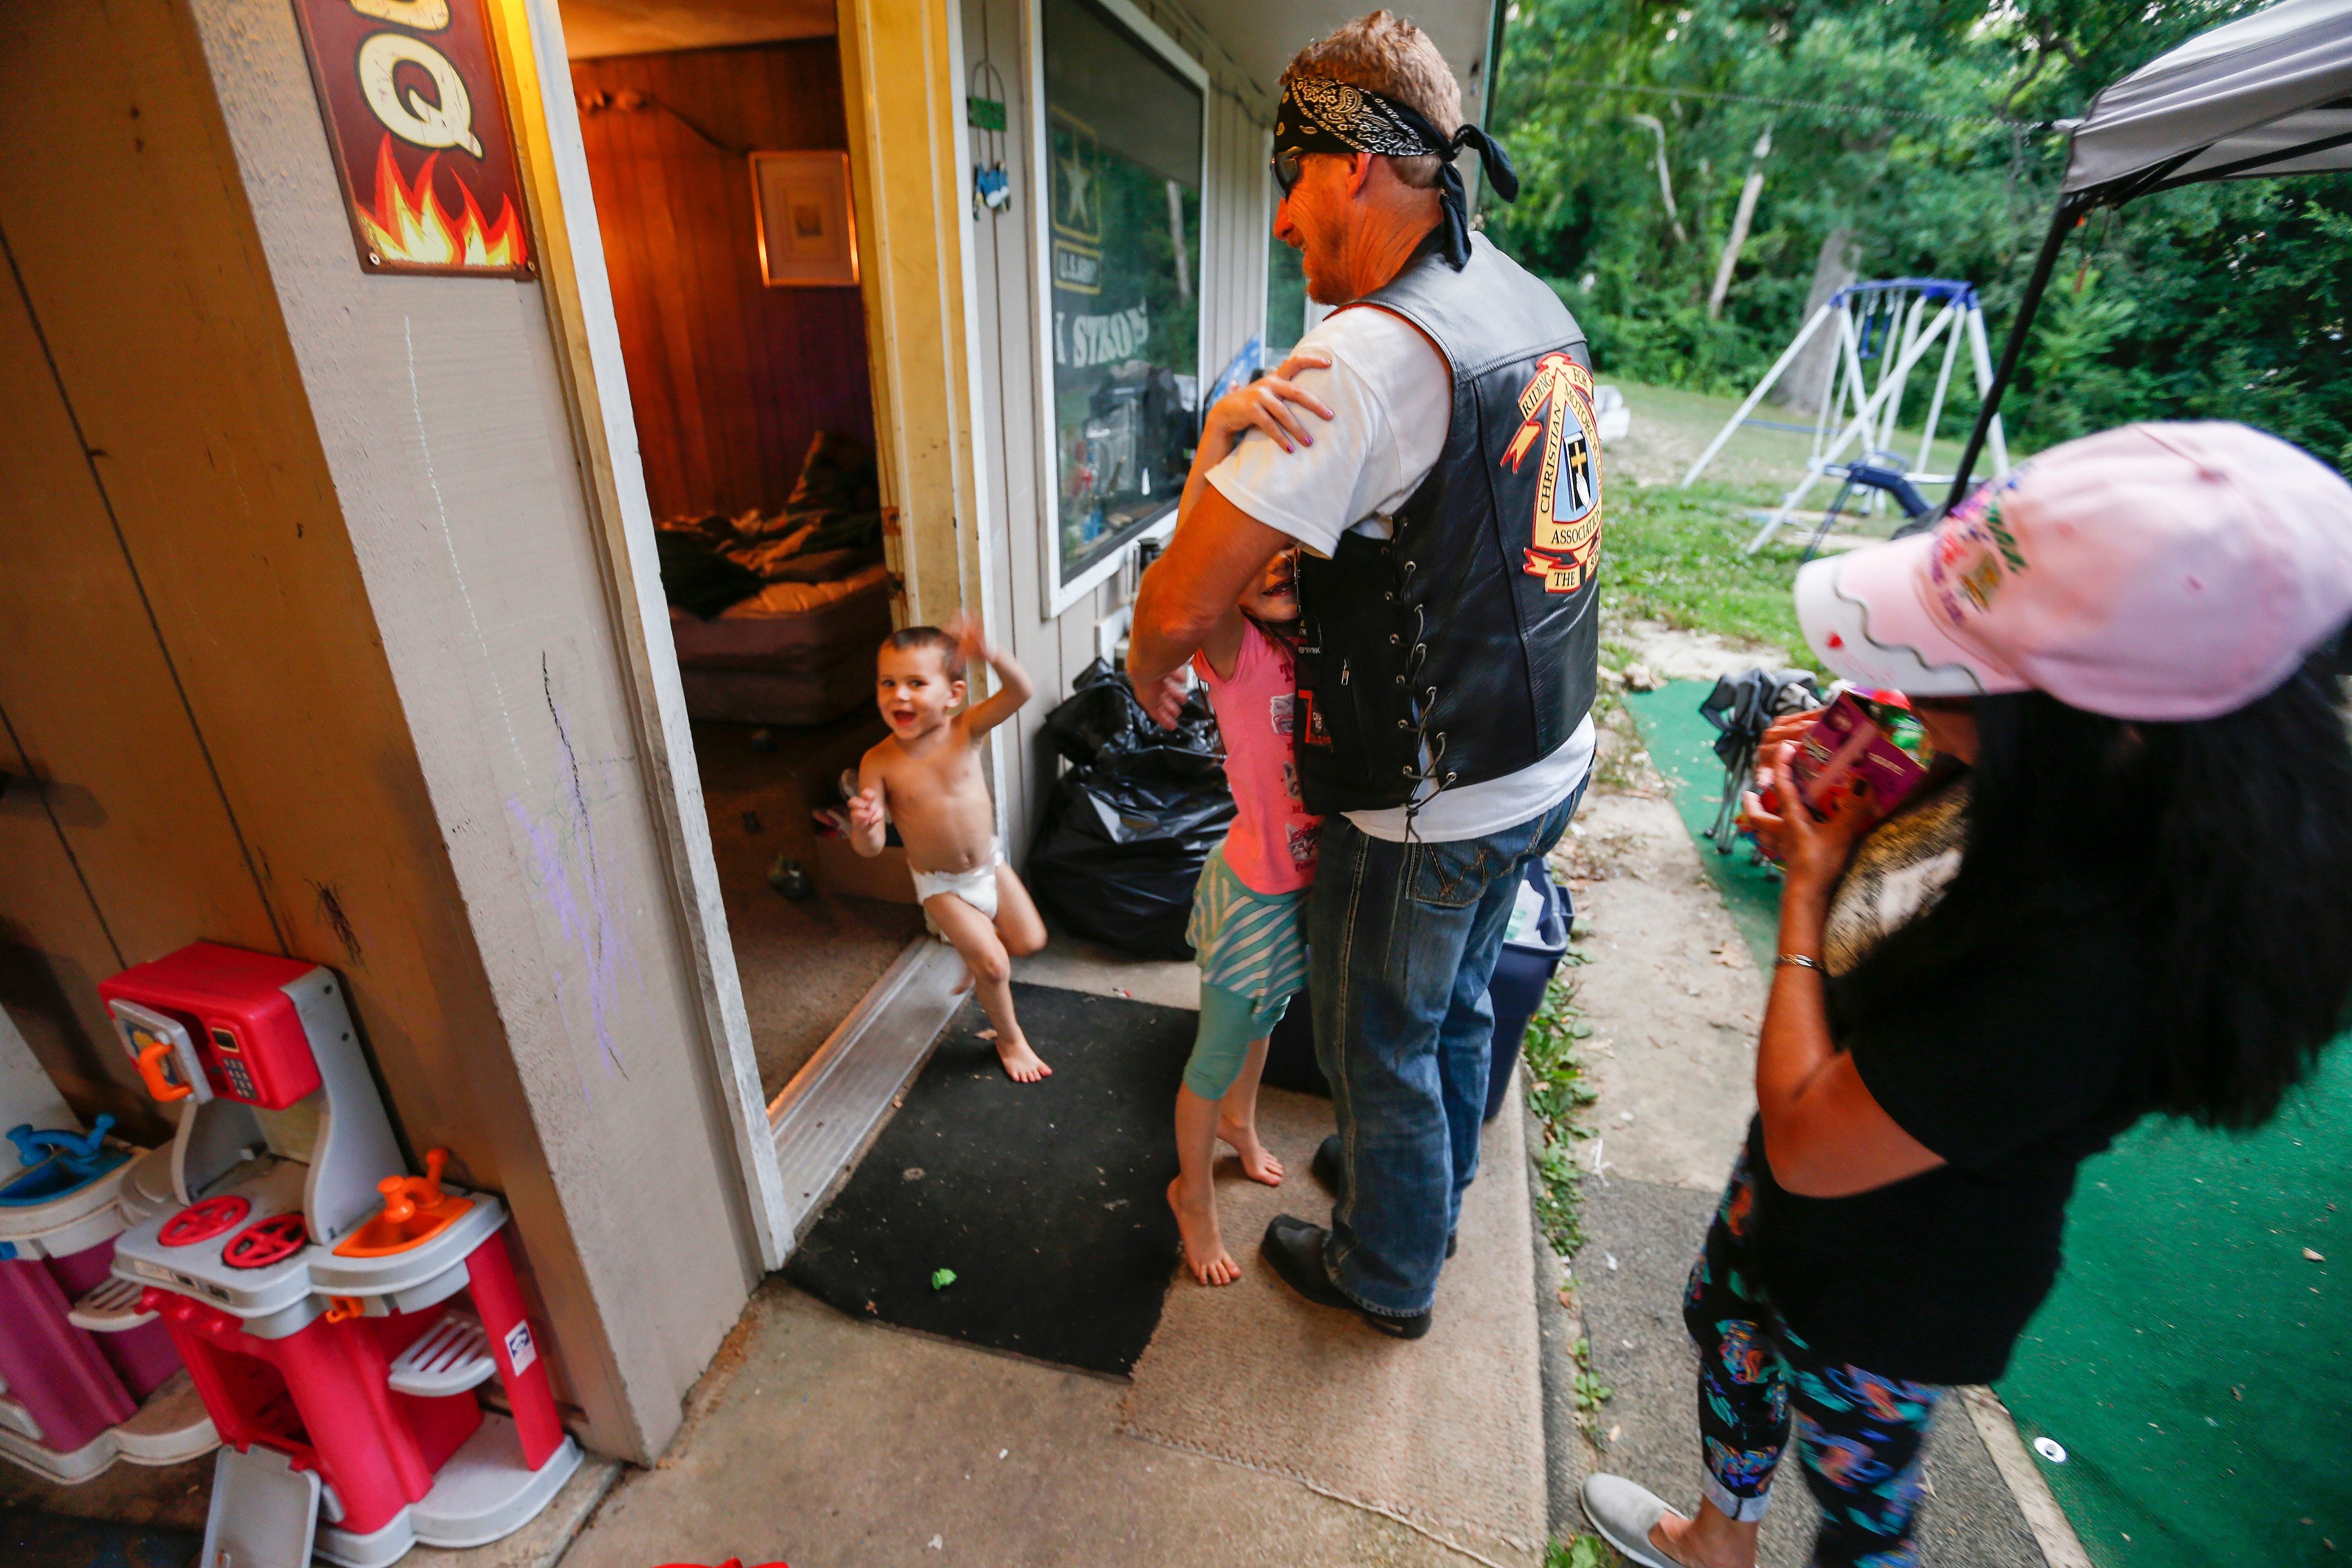 Rick Diamond and Estrella Wilson, volunteers with Jesus Was Homeless, are greeted by Deborah Norris, 6, and her brother Gabriel Norris, 3, on Thursday, July 5, 2018. Jesus Was Homeless volunteers deliver meals to residents in Branson's extended stay hotels every Thursday.